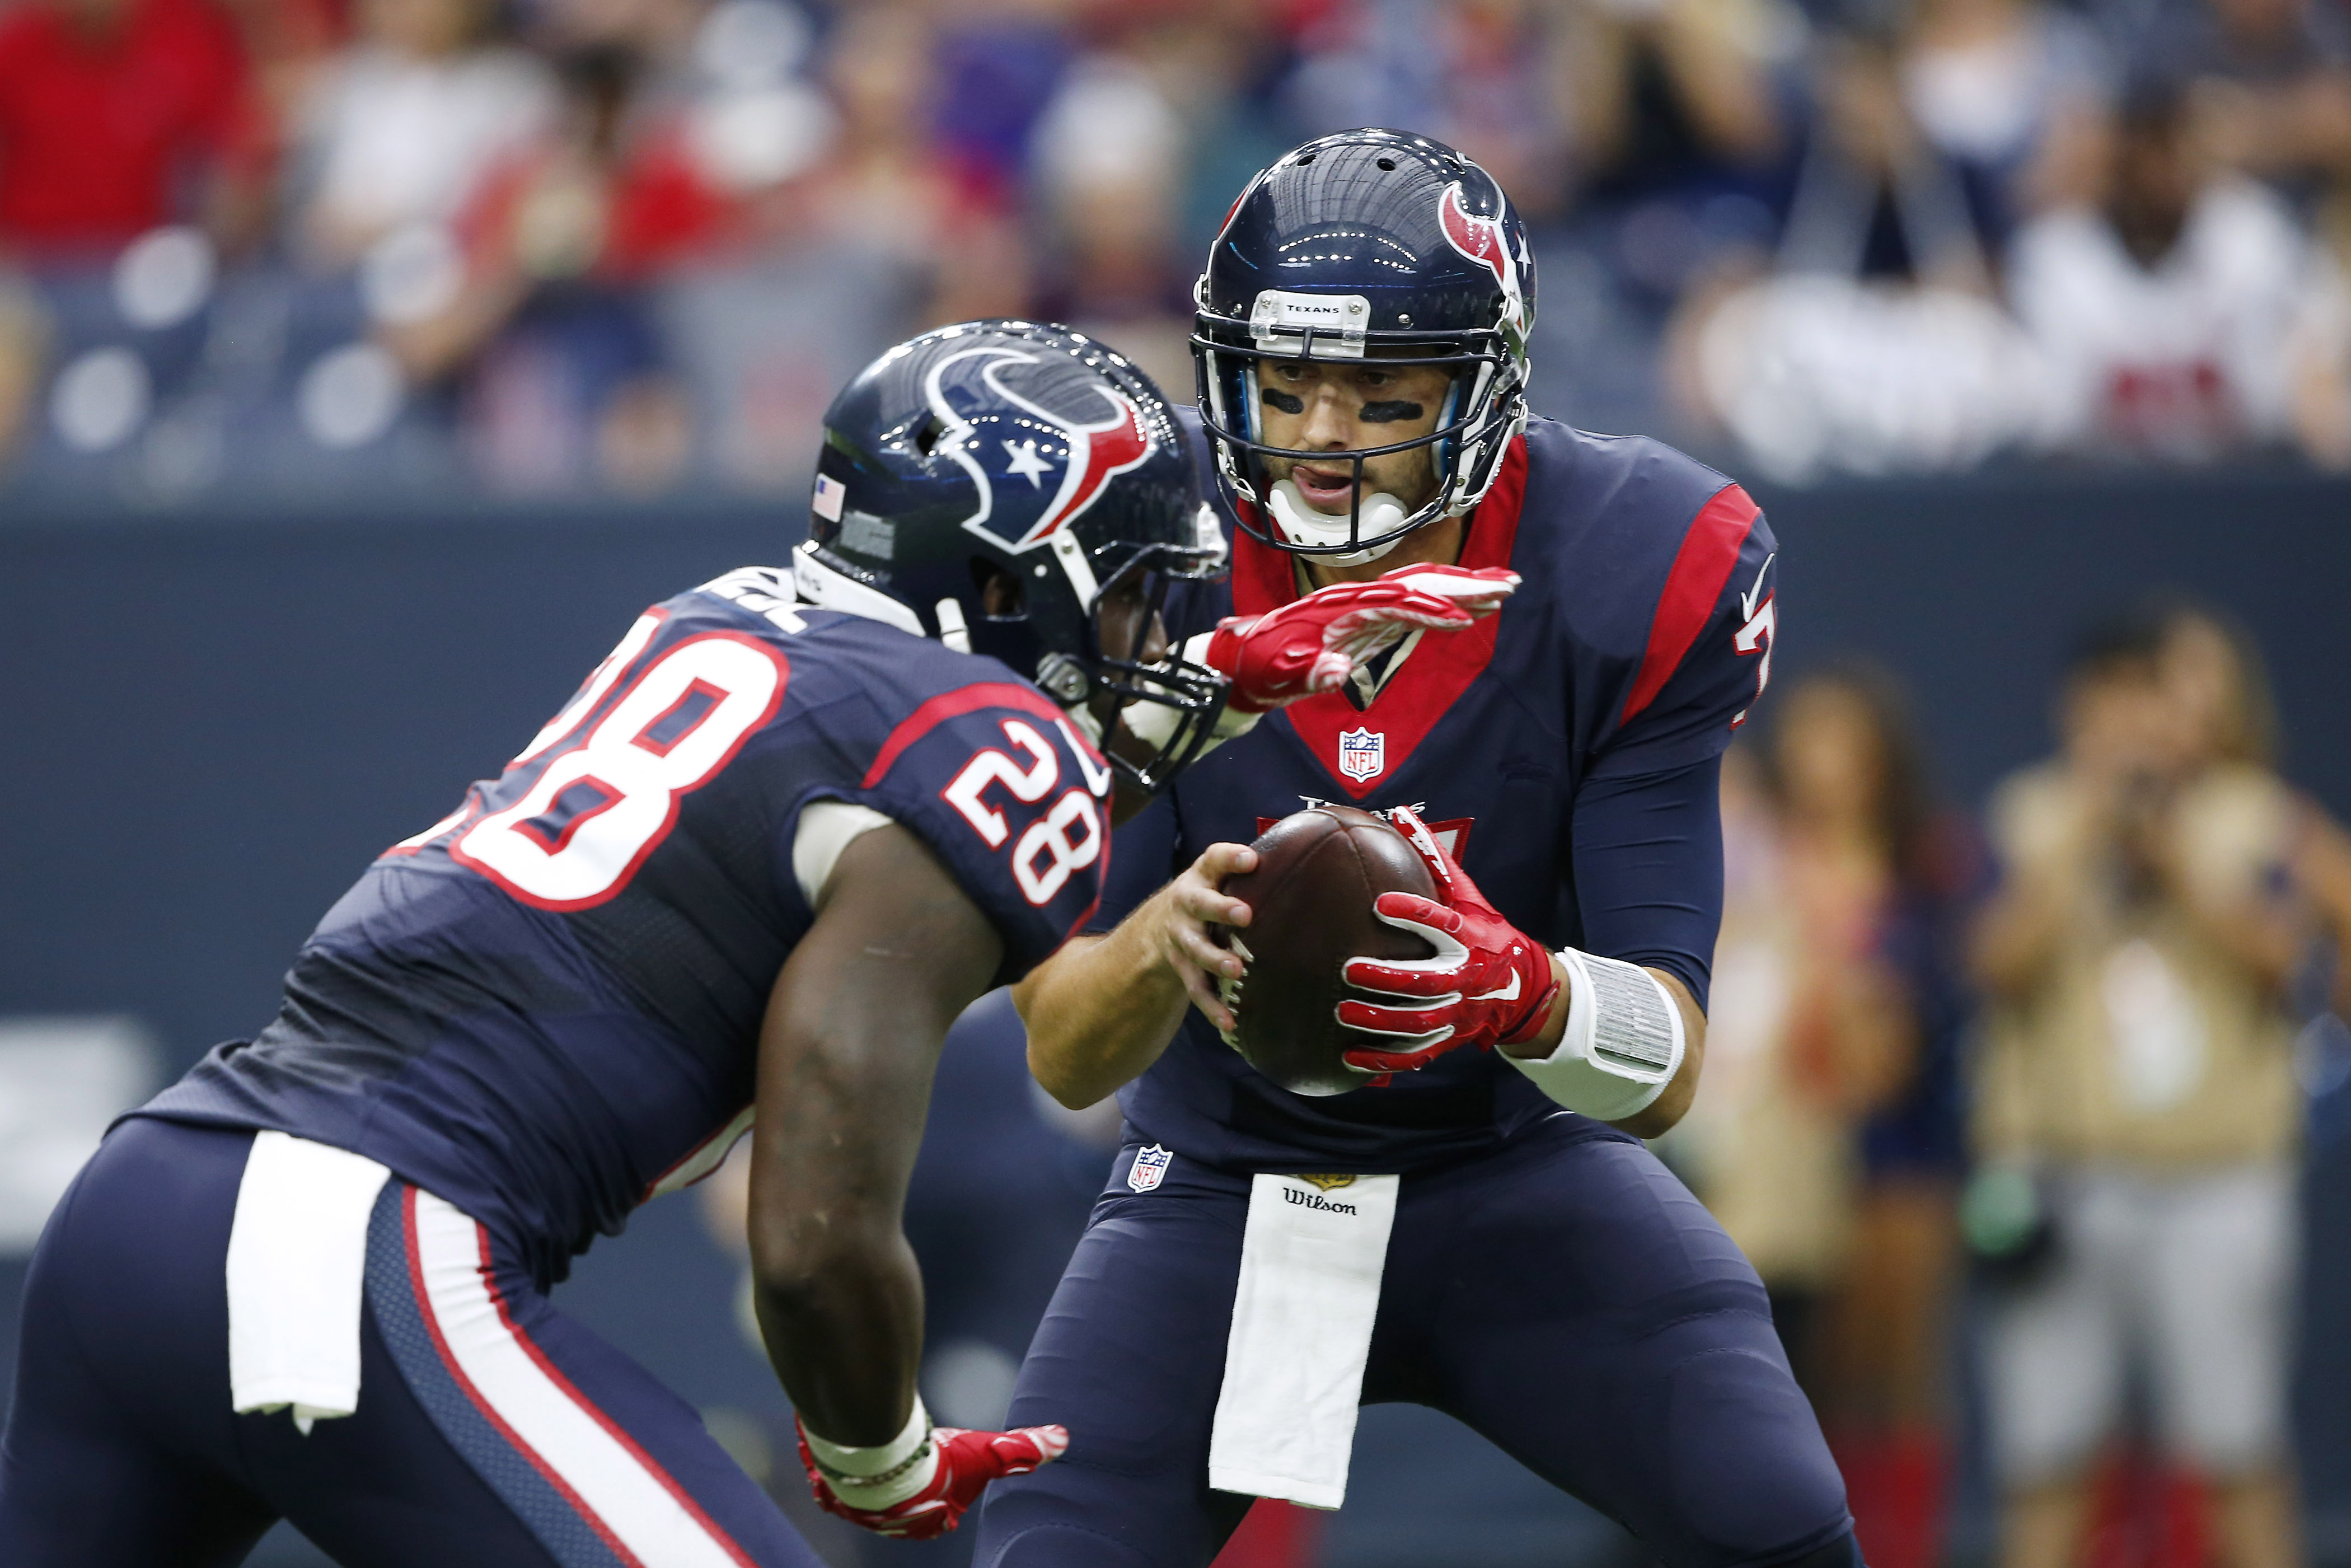 Fortunately, Brian Hoyer won't be handing the ball off to anyone in a Texans jersey this year.